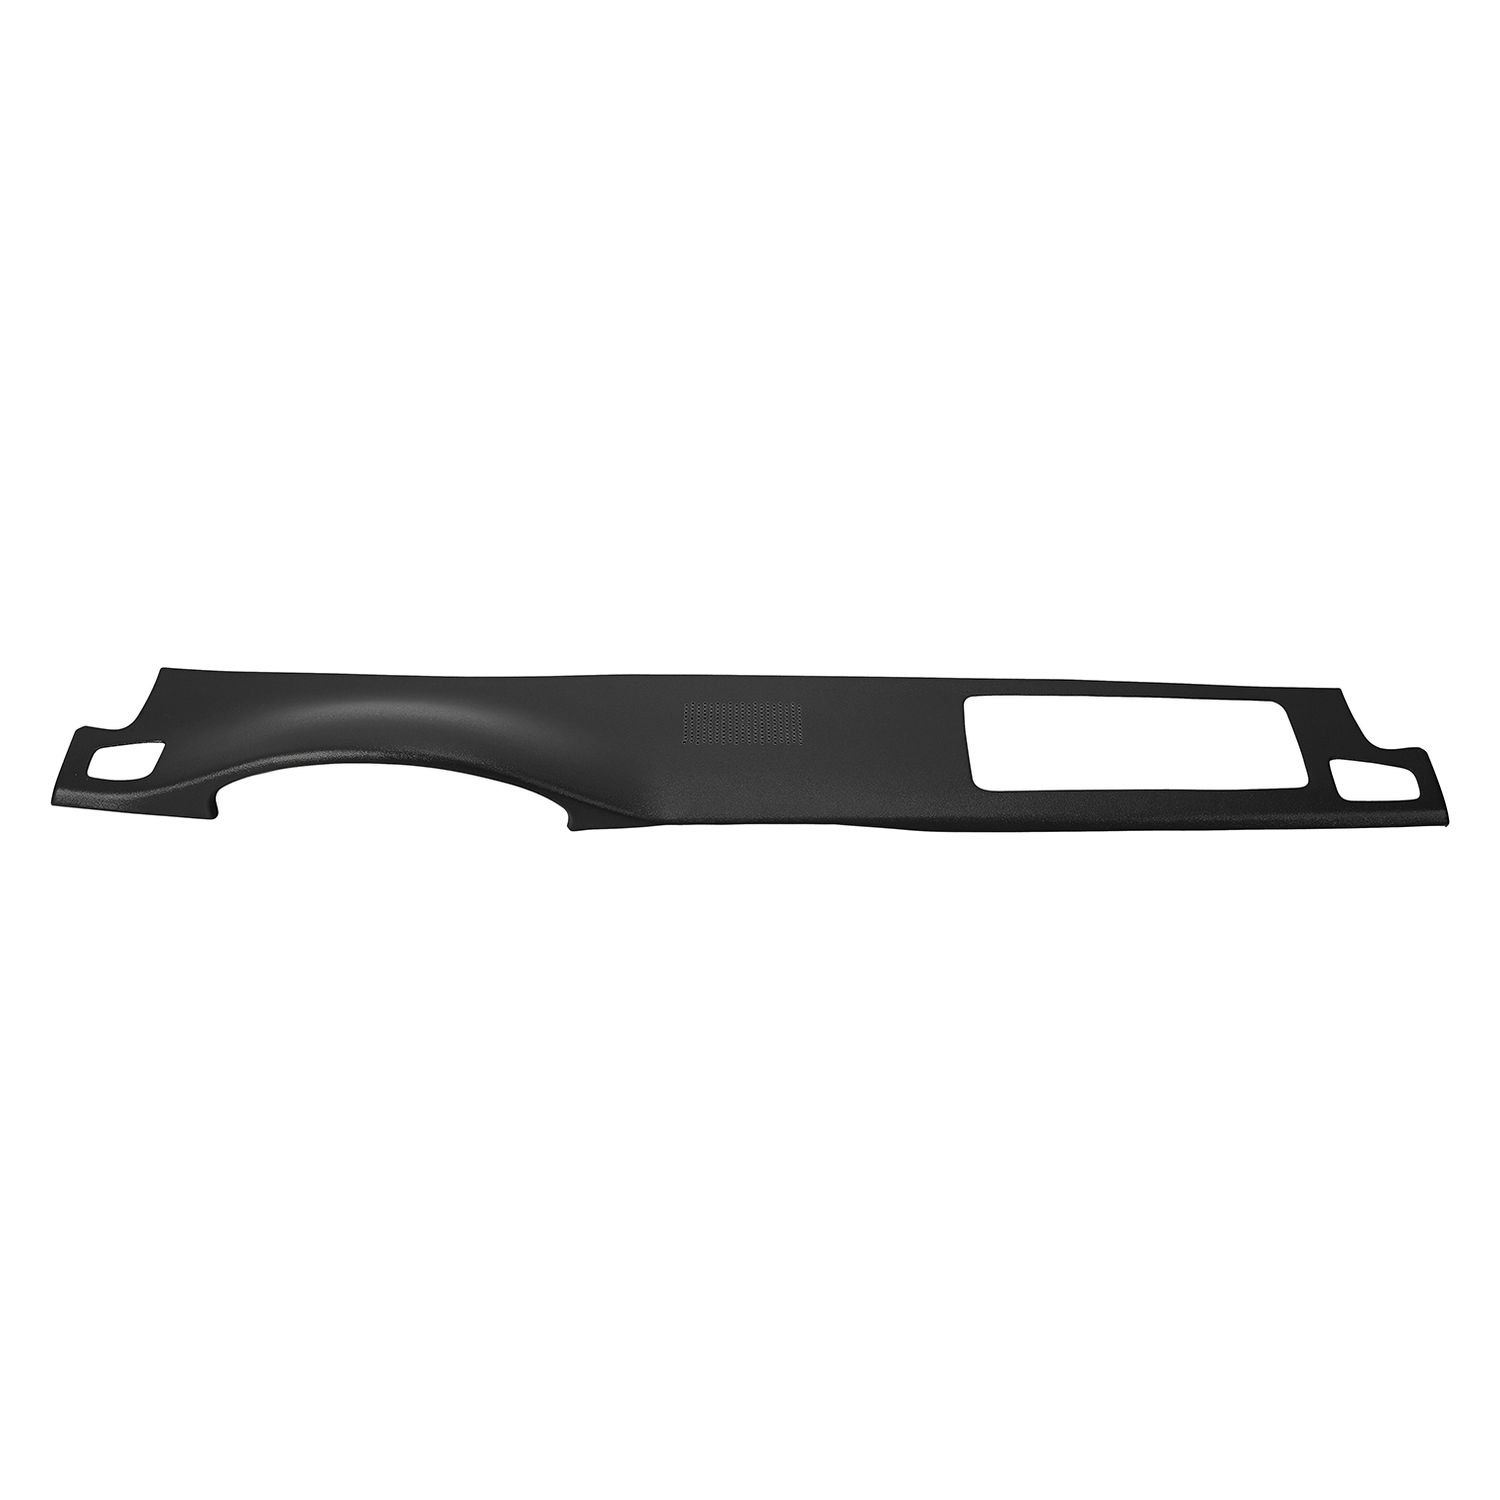 Cadillac Escalade 2008 Dash Cover